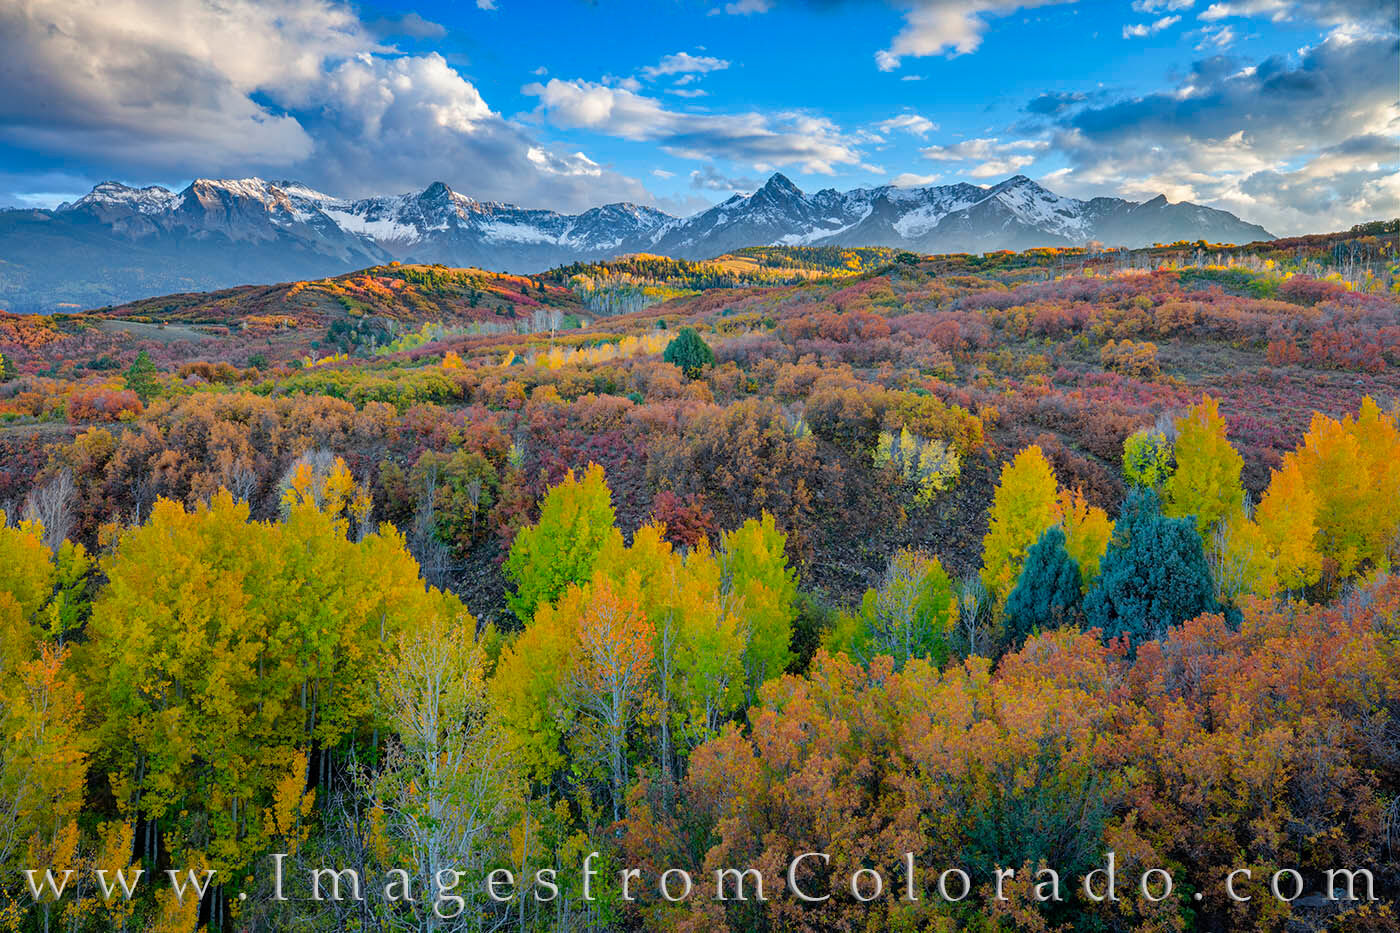 The Dallas Divide is one of the iconic fall scenes in the San Juans. Each Autumn, photographers and sightseers flock to this...